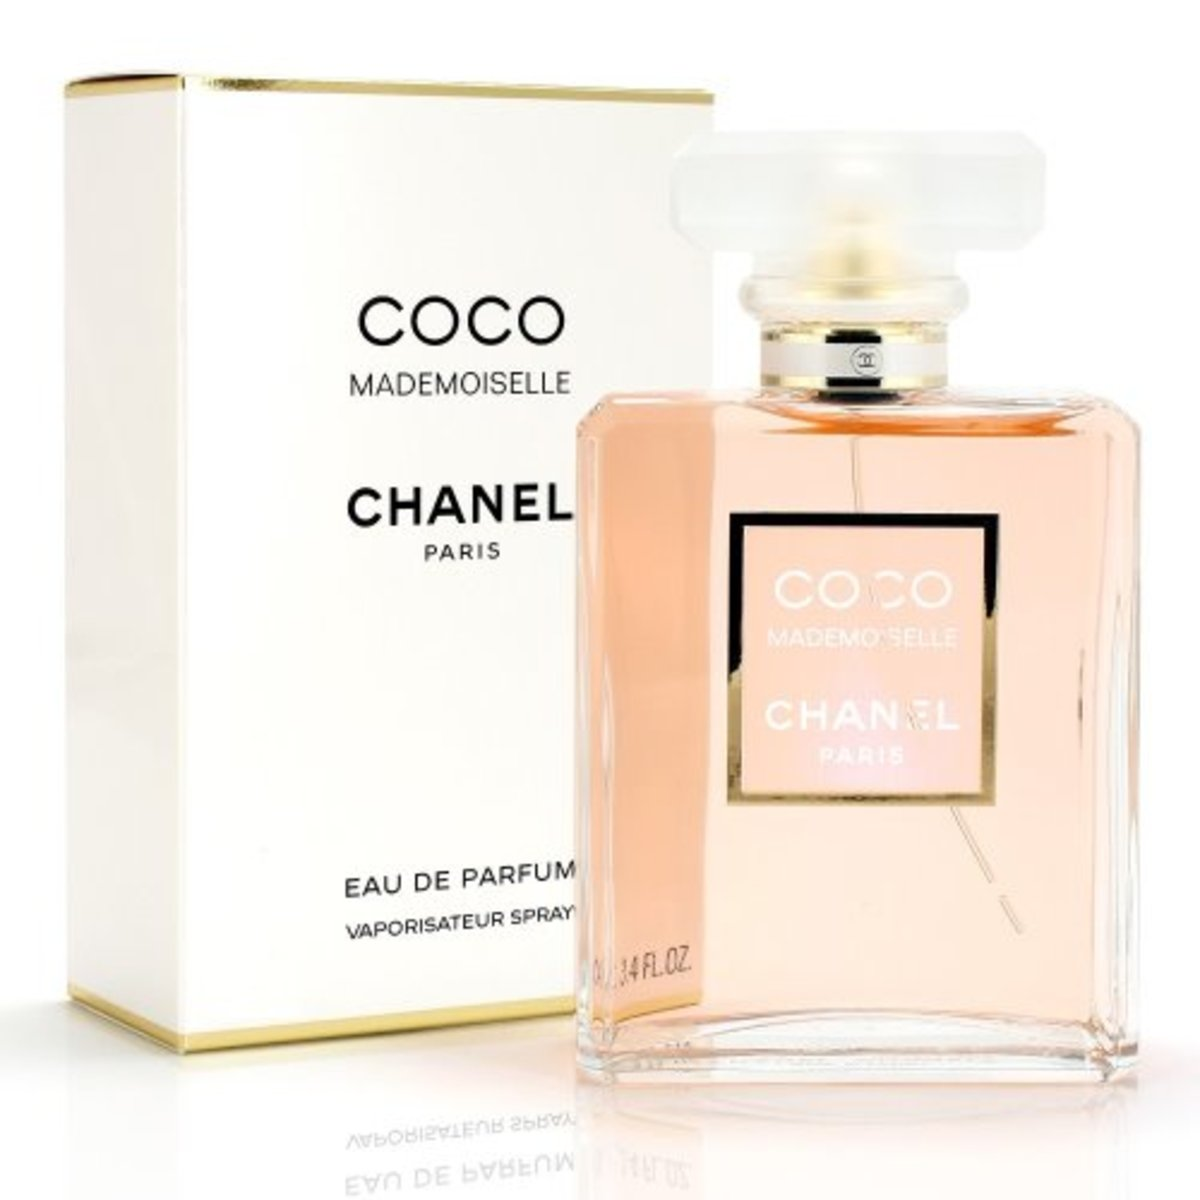 CoCo Mademoiselle EDP 100ml [Parallel Import]